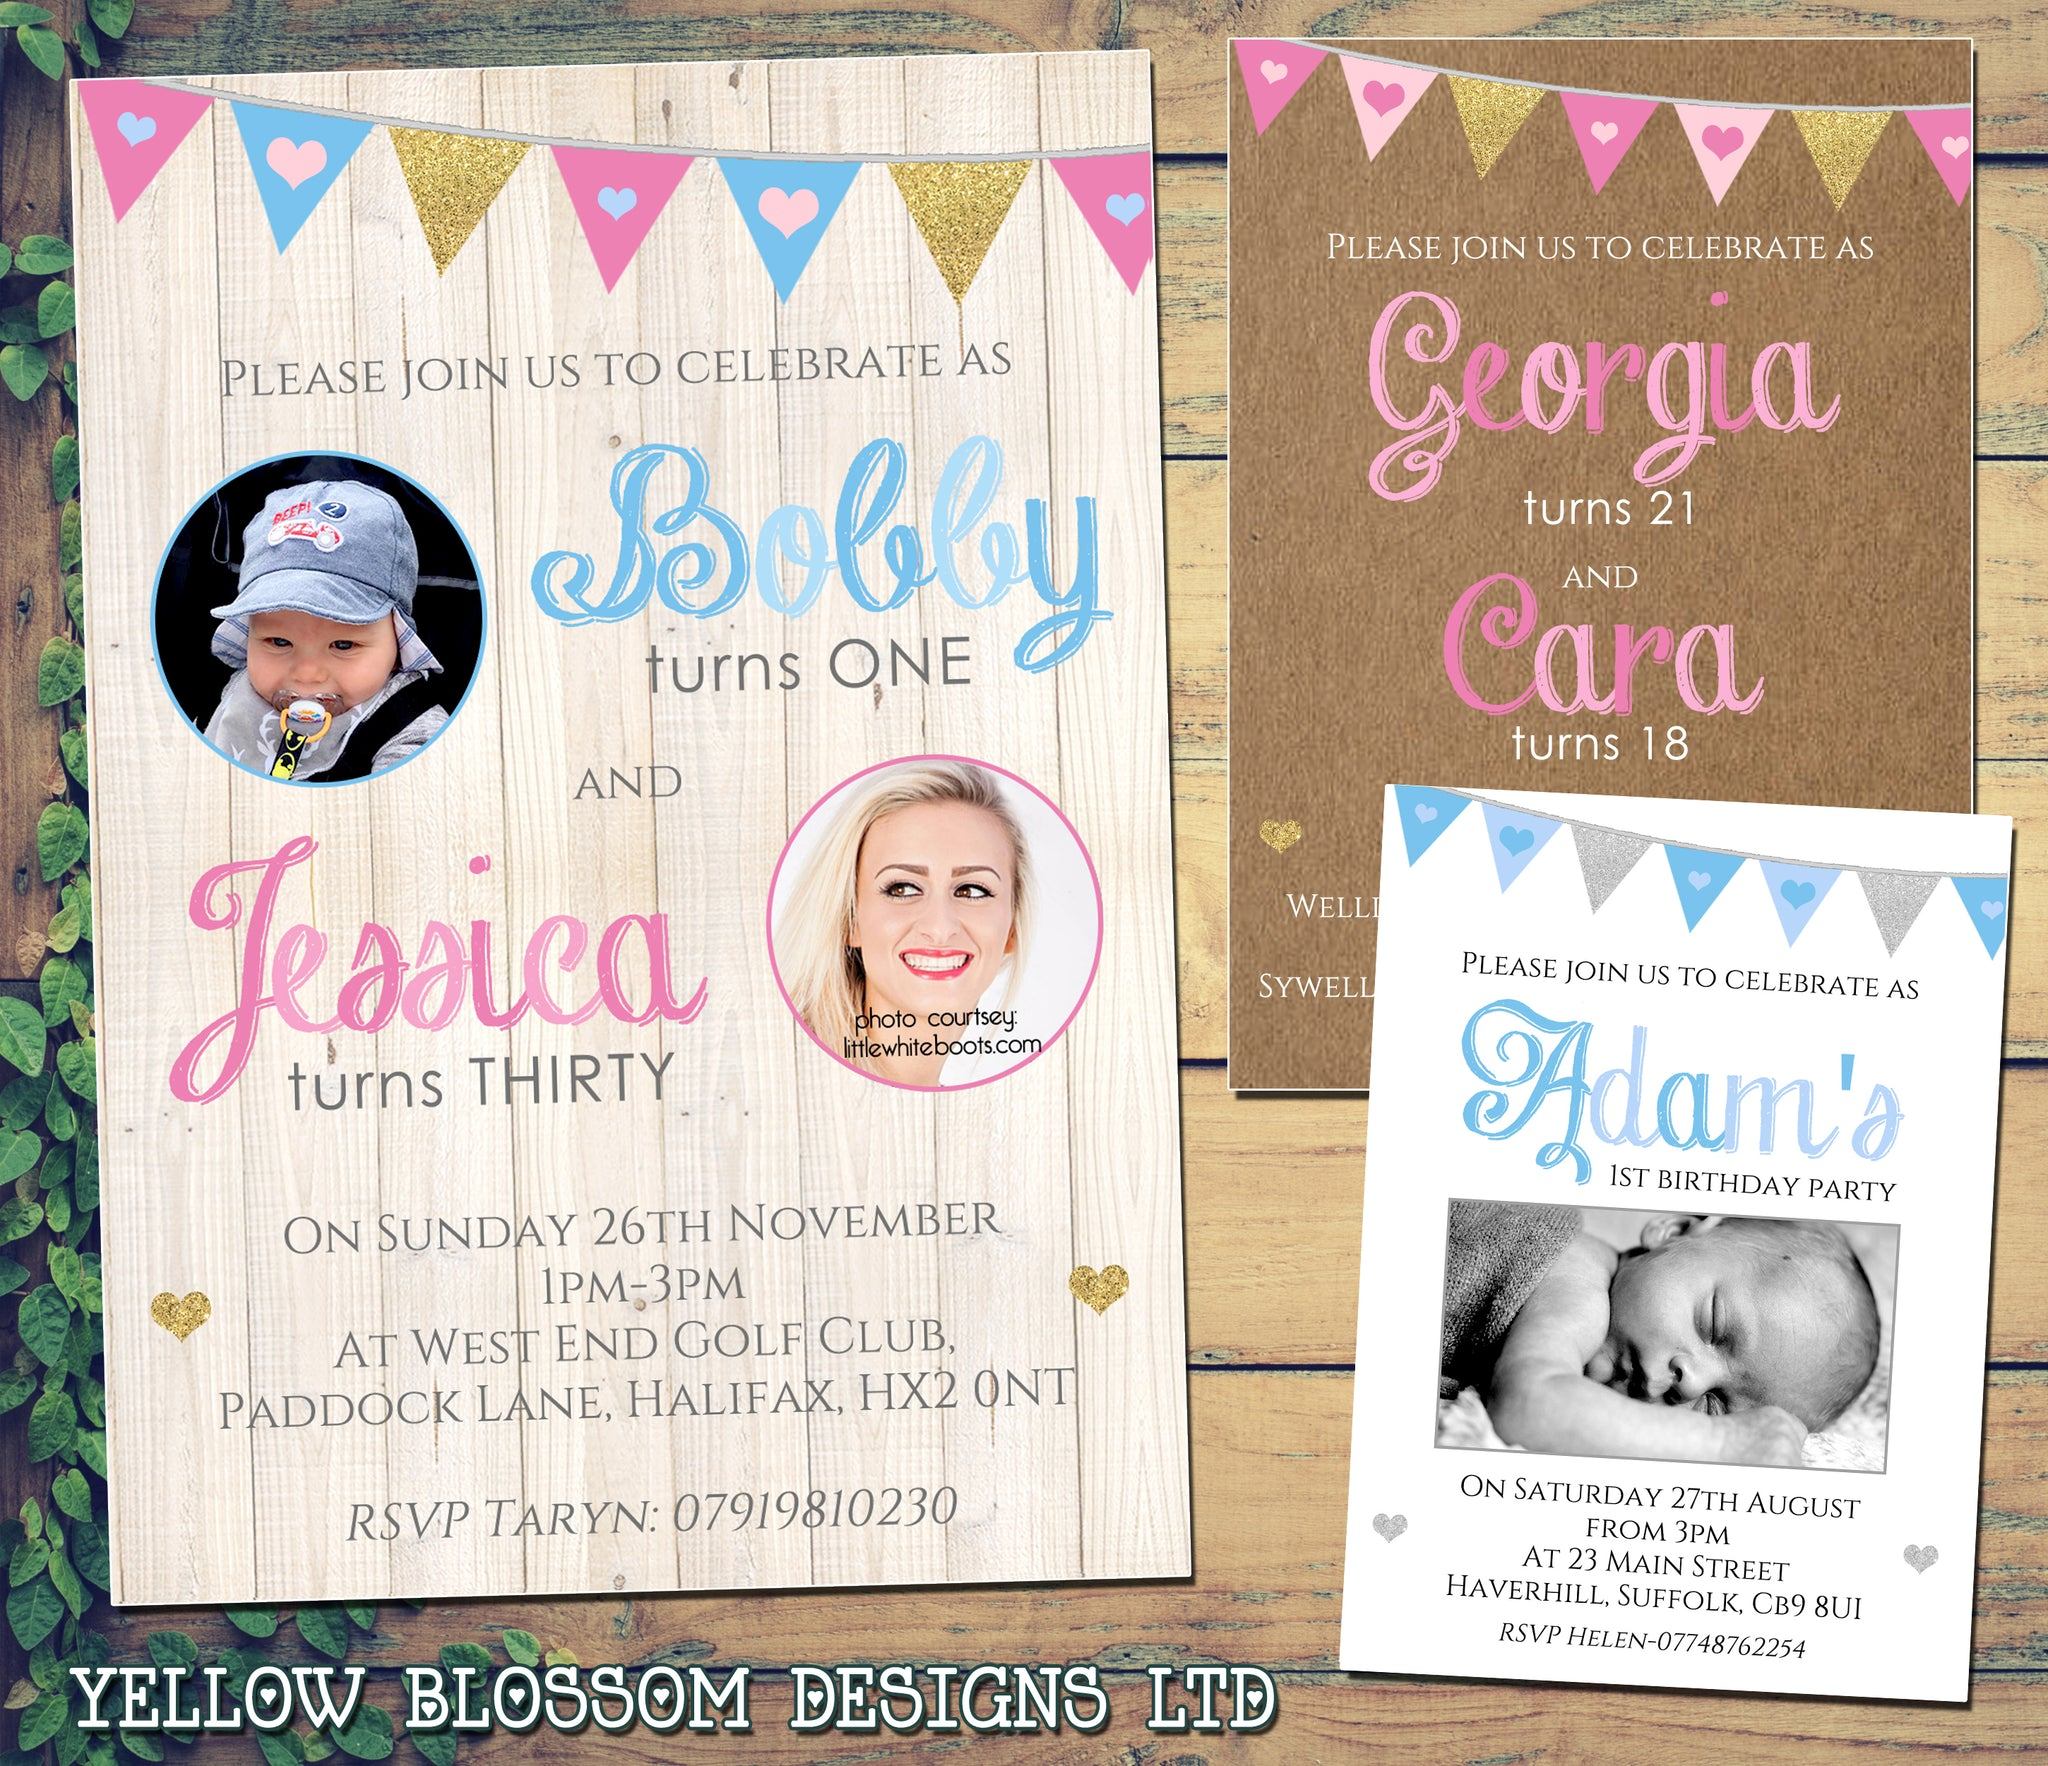 Joint Shabby Chic Rustic Birthday Invitations Personalised Bespoke Twin QUANTITY DISCOUNT AVAILABLE